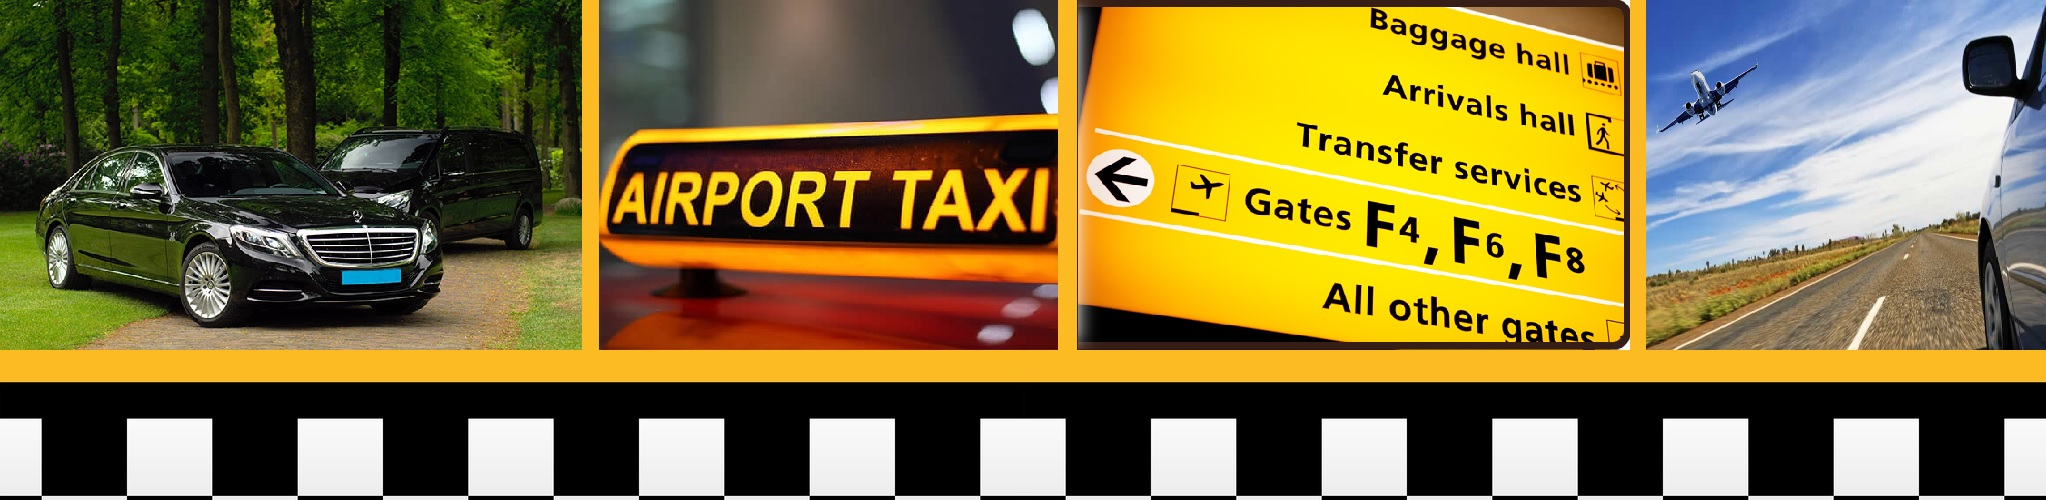 airport taxi service Acquoy-West Betuwe